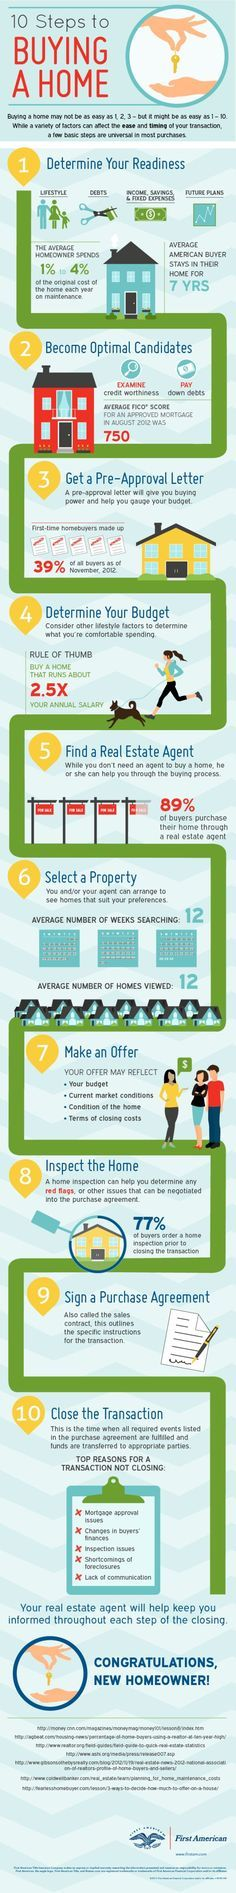 10 Steps to Buying a Home Infographic First American Title Buying a Home #buyingahome #homebuyingtips